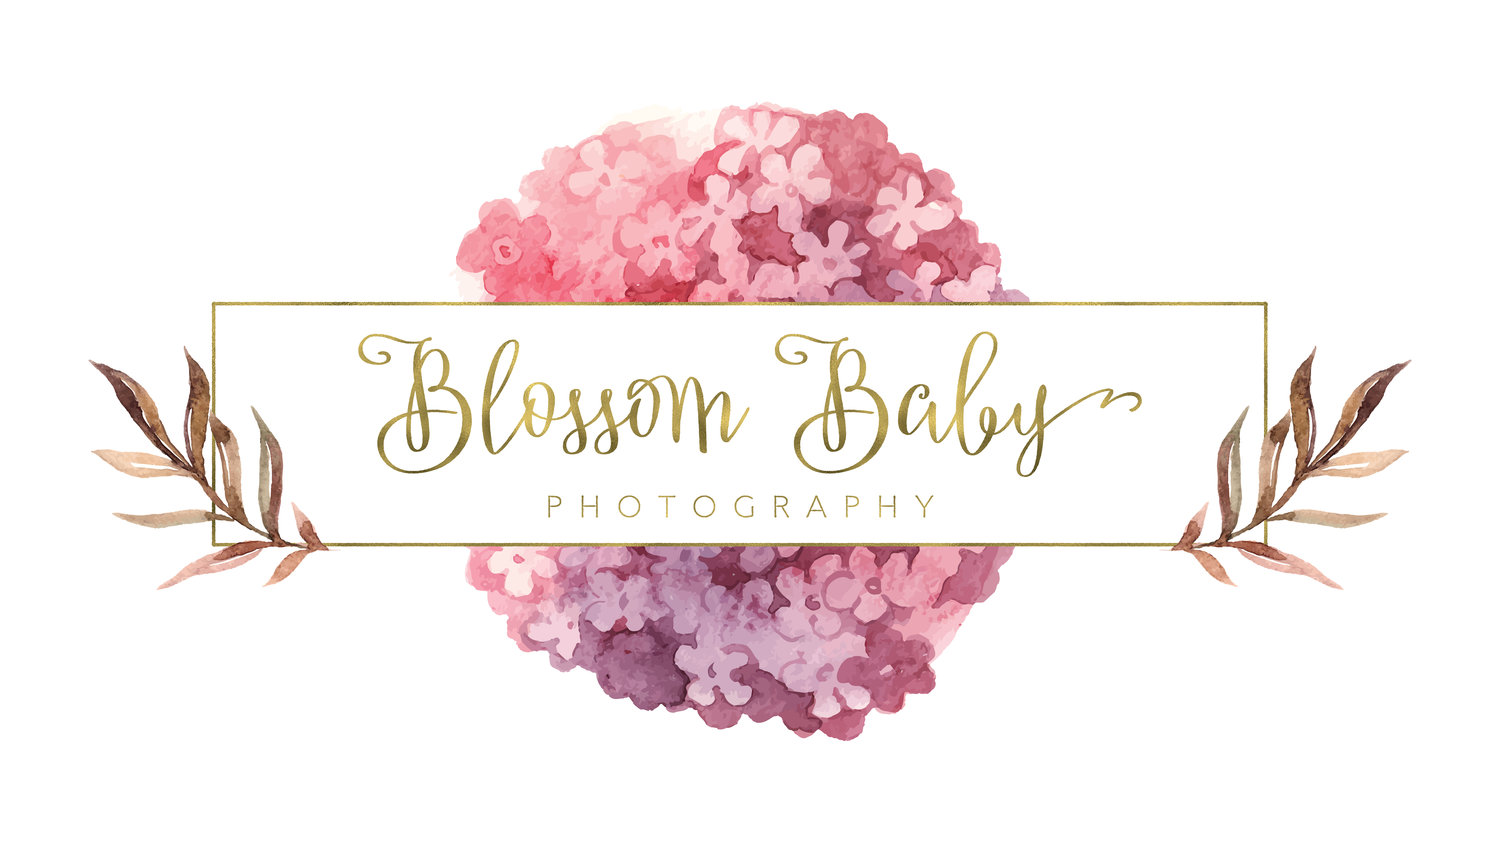 Blossom Baby Photography